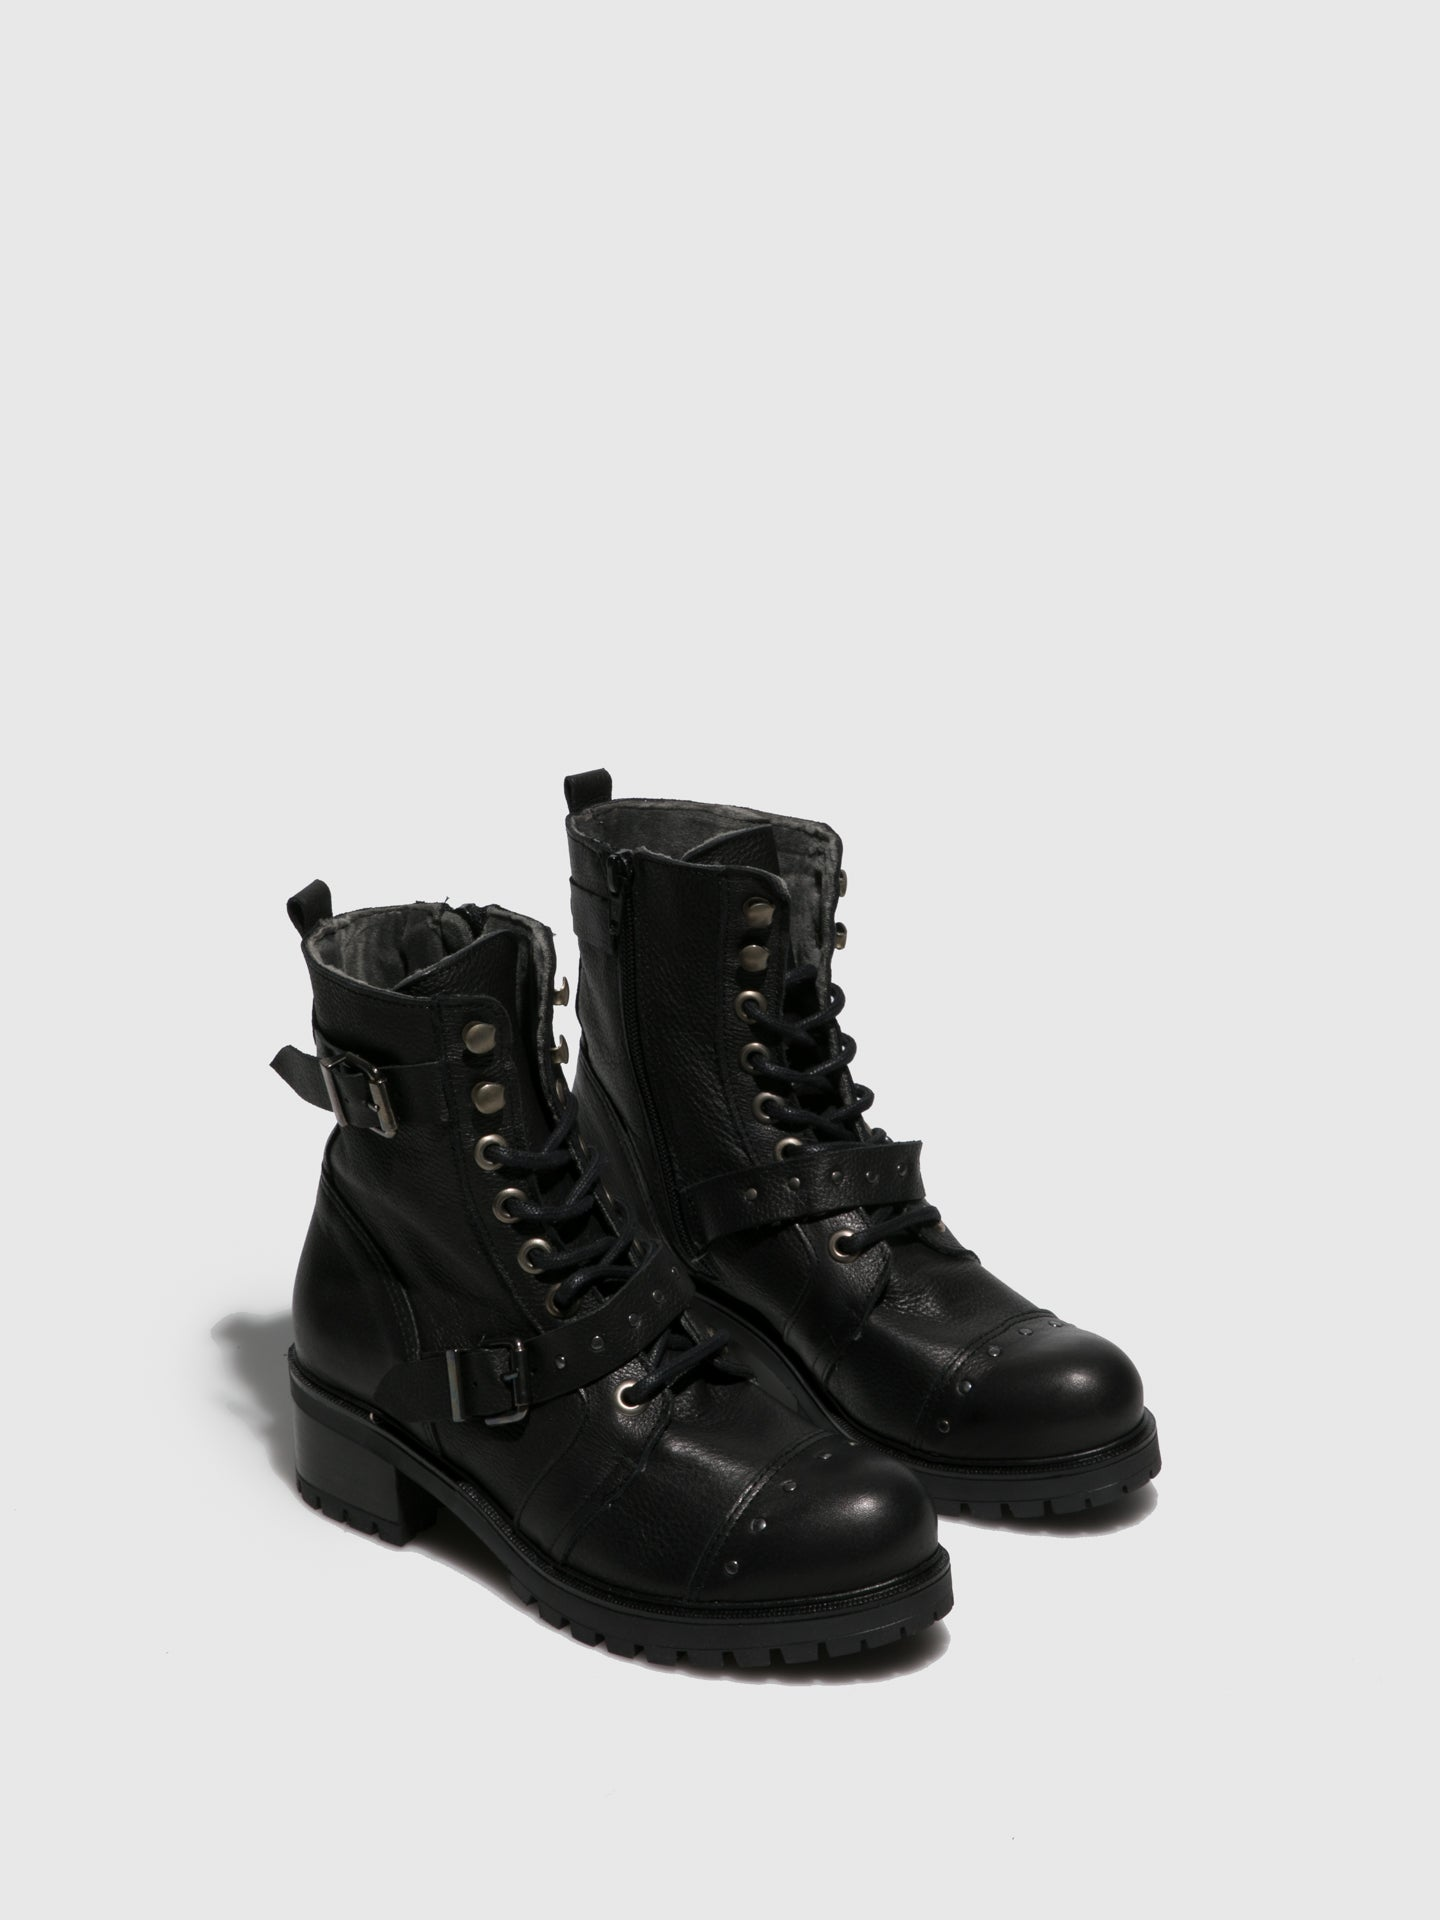 Sotoalto Black Lace-up Boots